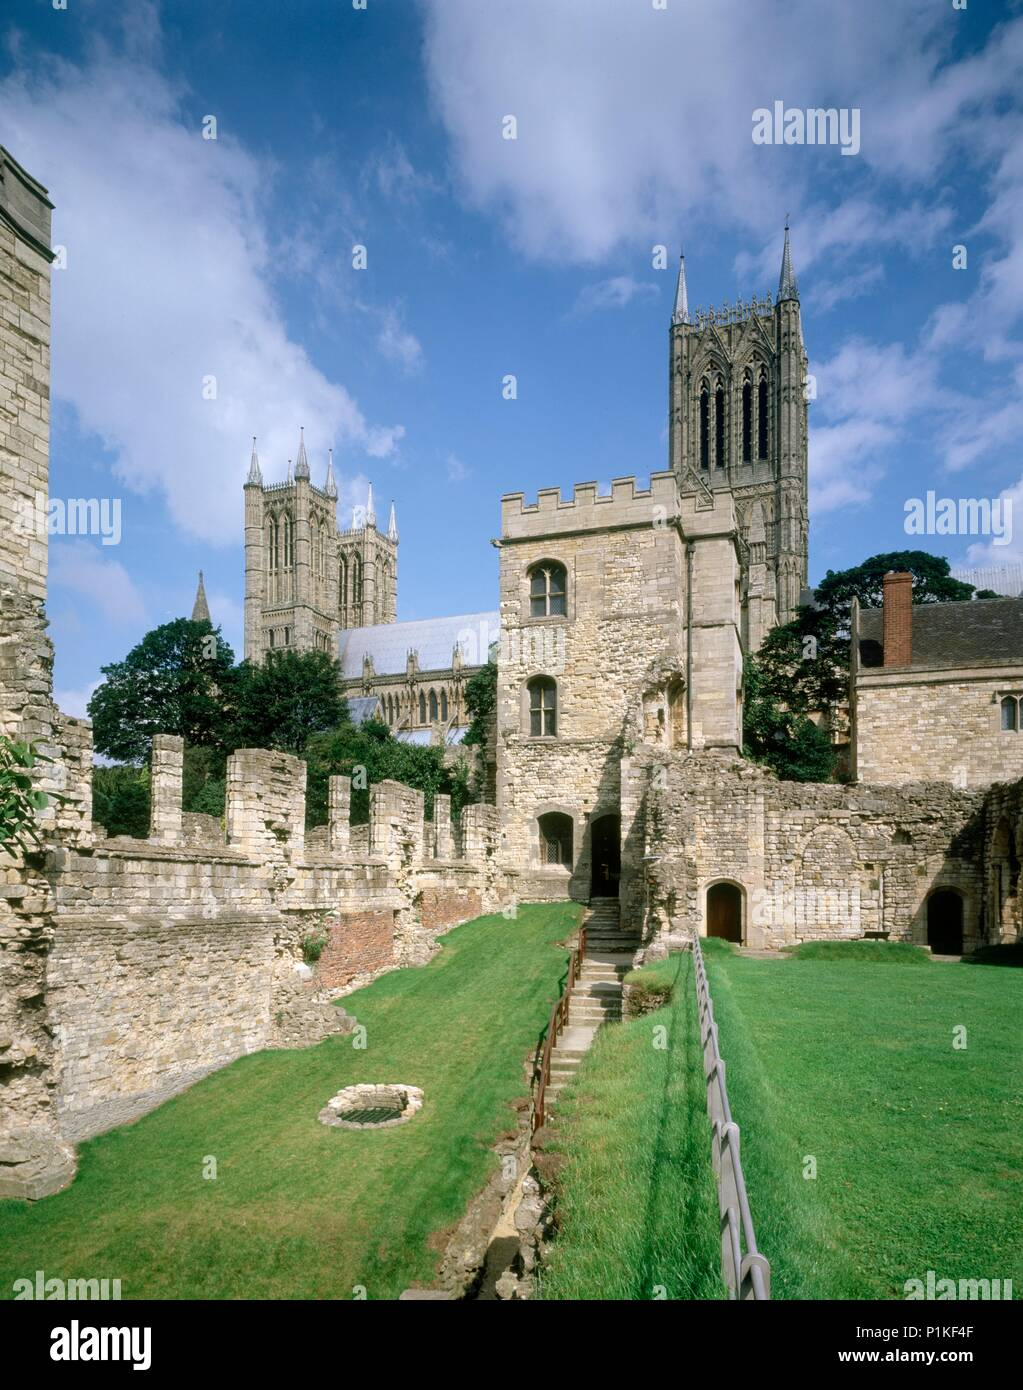 Bishop's Palace, Lincoln, Lincolnshire, c1980-c2017. View looking towards Alnwick Tower with the cathedral behind. Begun in the 1170s, Lincoln's medie - Stock Image